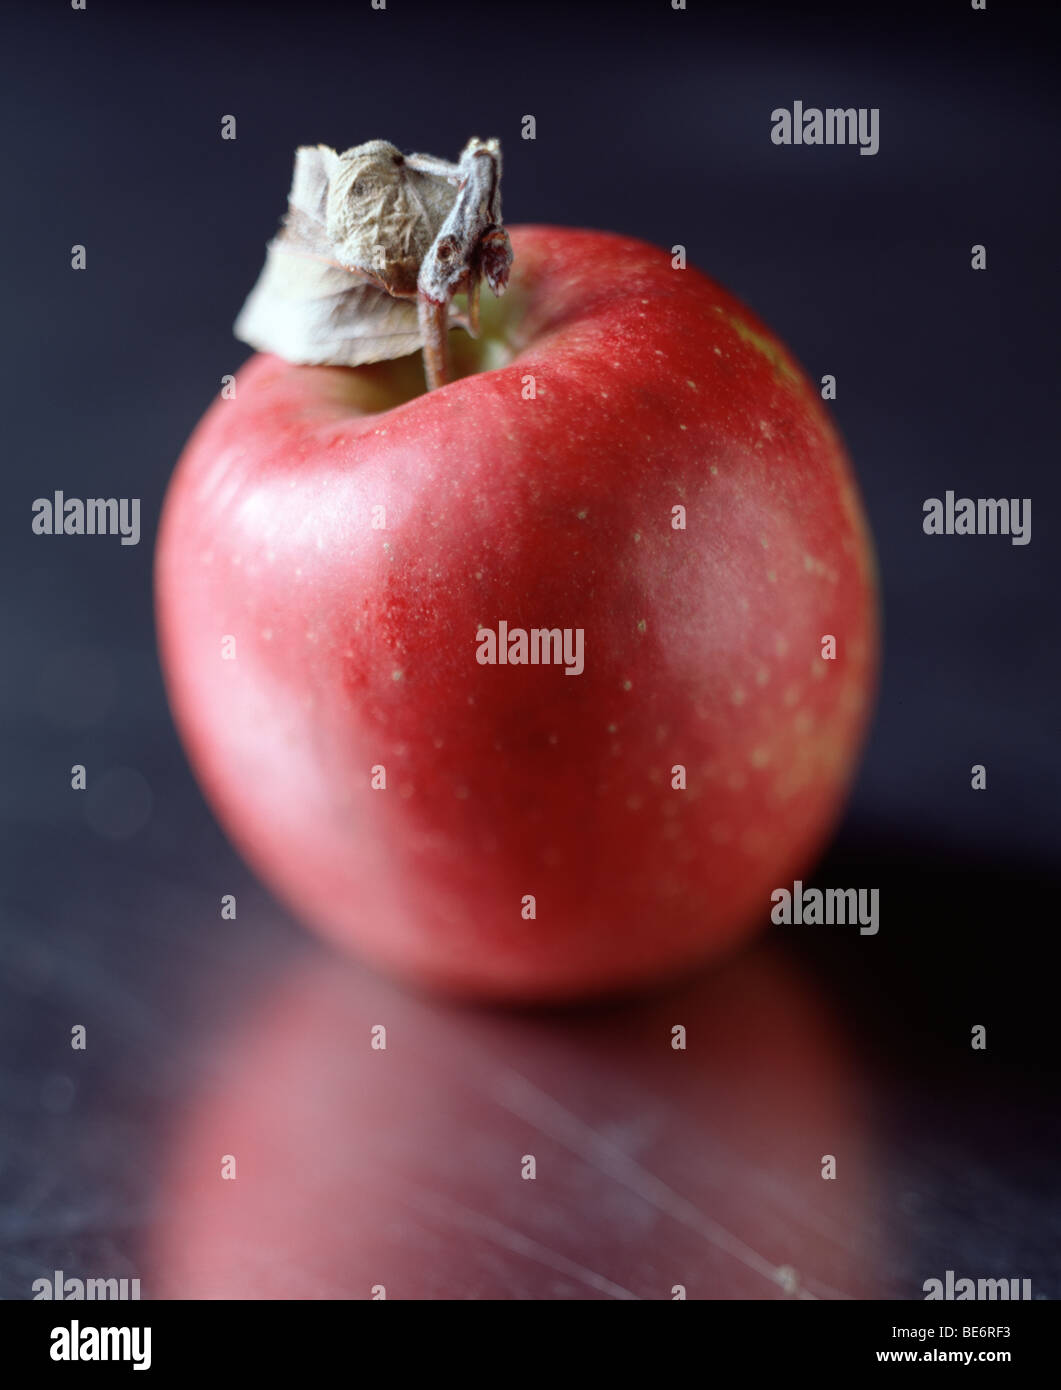 Close up of wholesome, nutritious apple - Stock Image